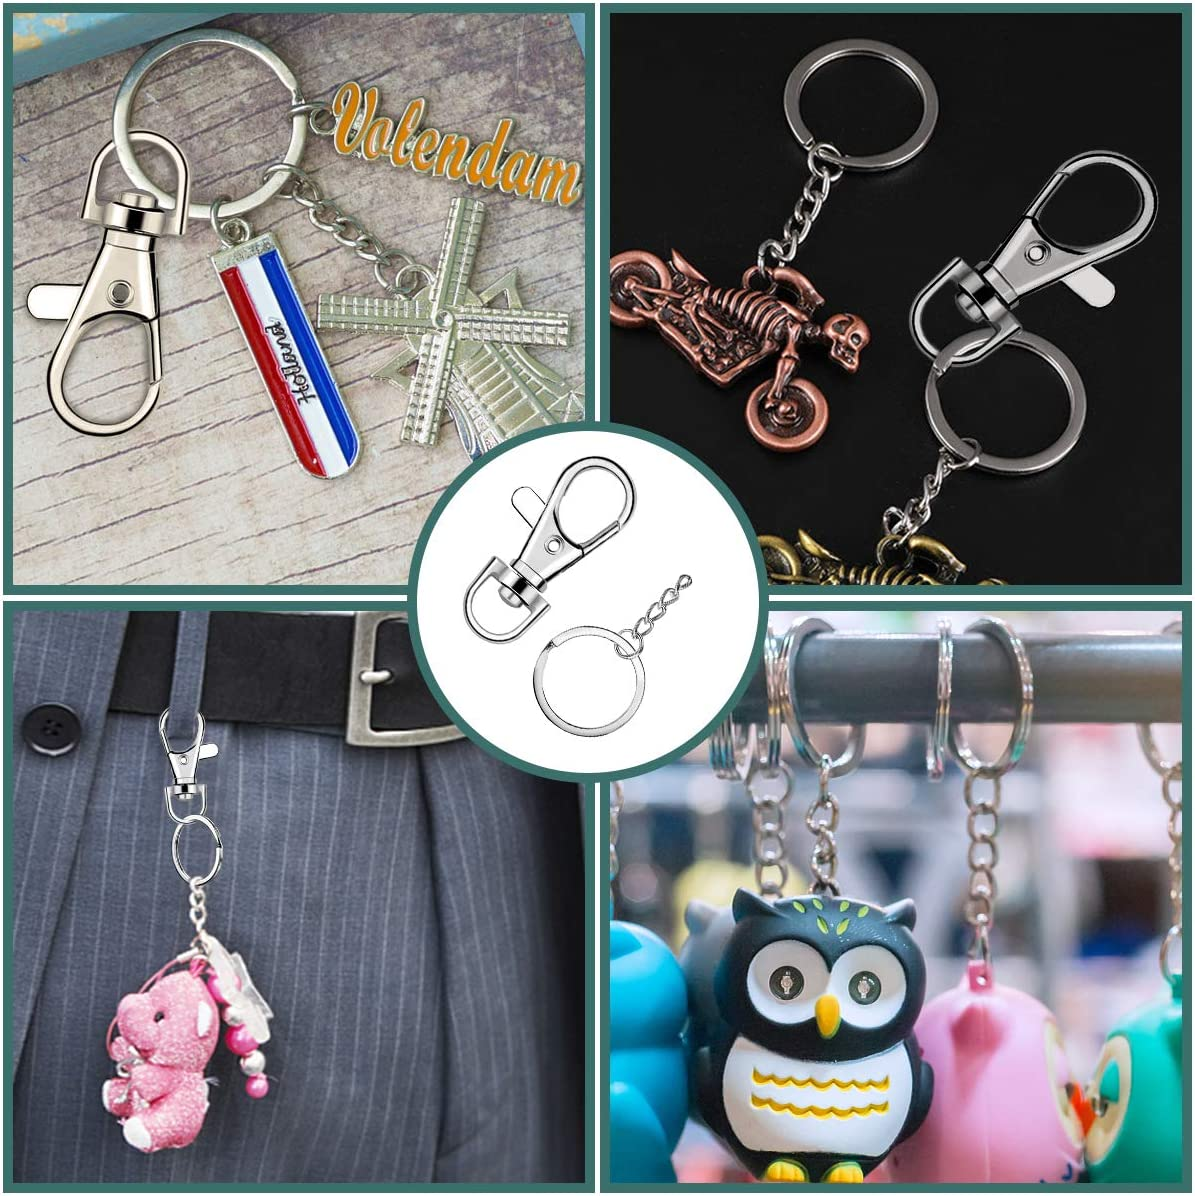 100 Pcs Lanyard Snap Hooks and Key Rings with Chain and Jump Rings for Keychain Lanyard DIY Jewelry Crafts Accessories 50 Pcs Swivel Snap Hooks +50 Pcs Flat Keychain Rings with Jump Rings